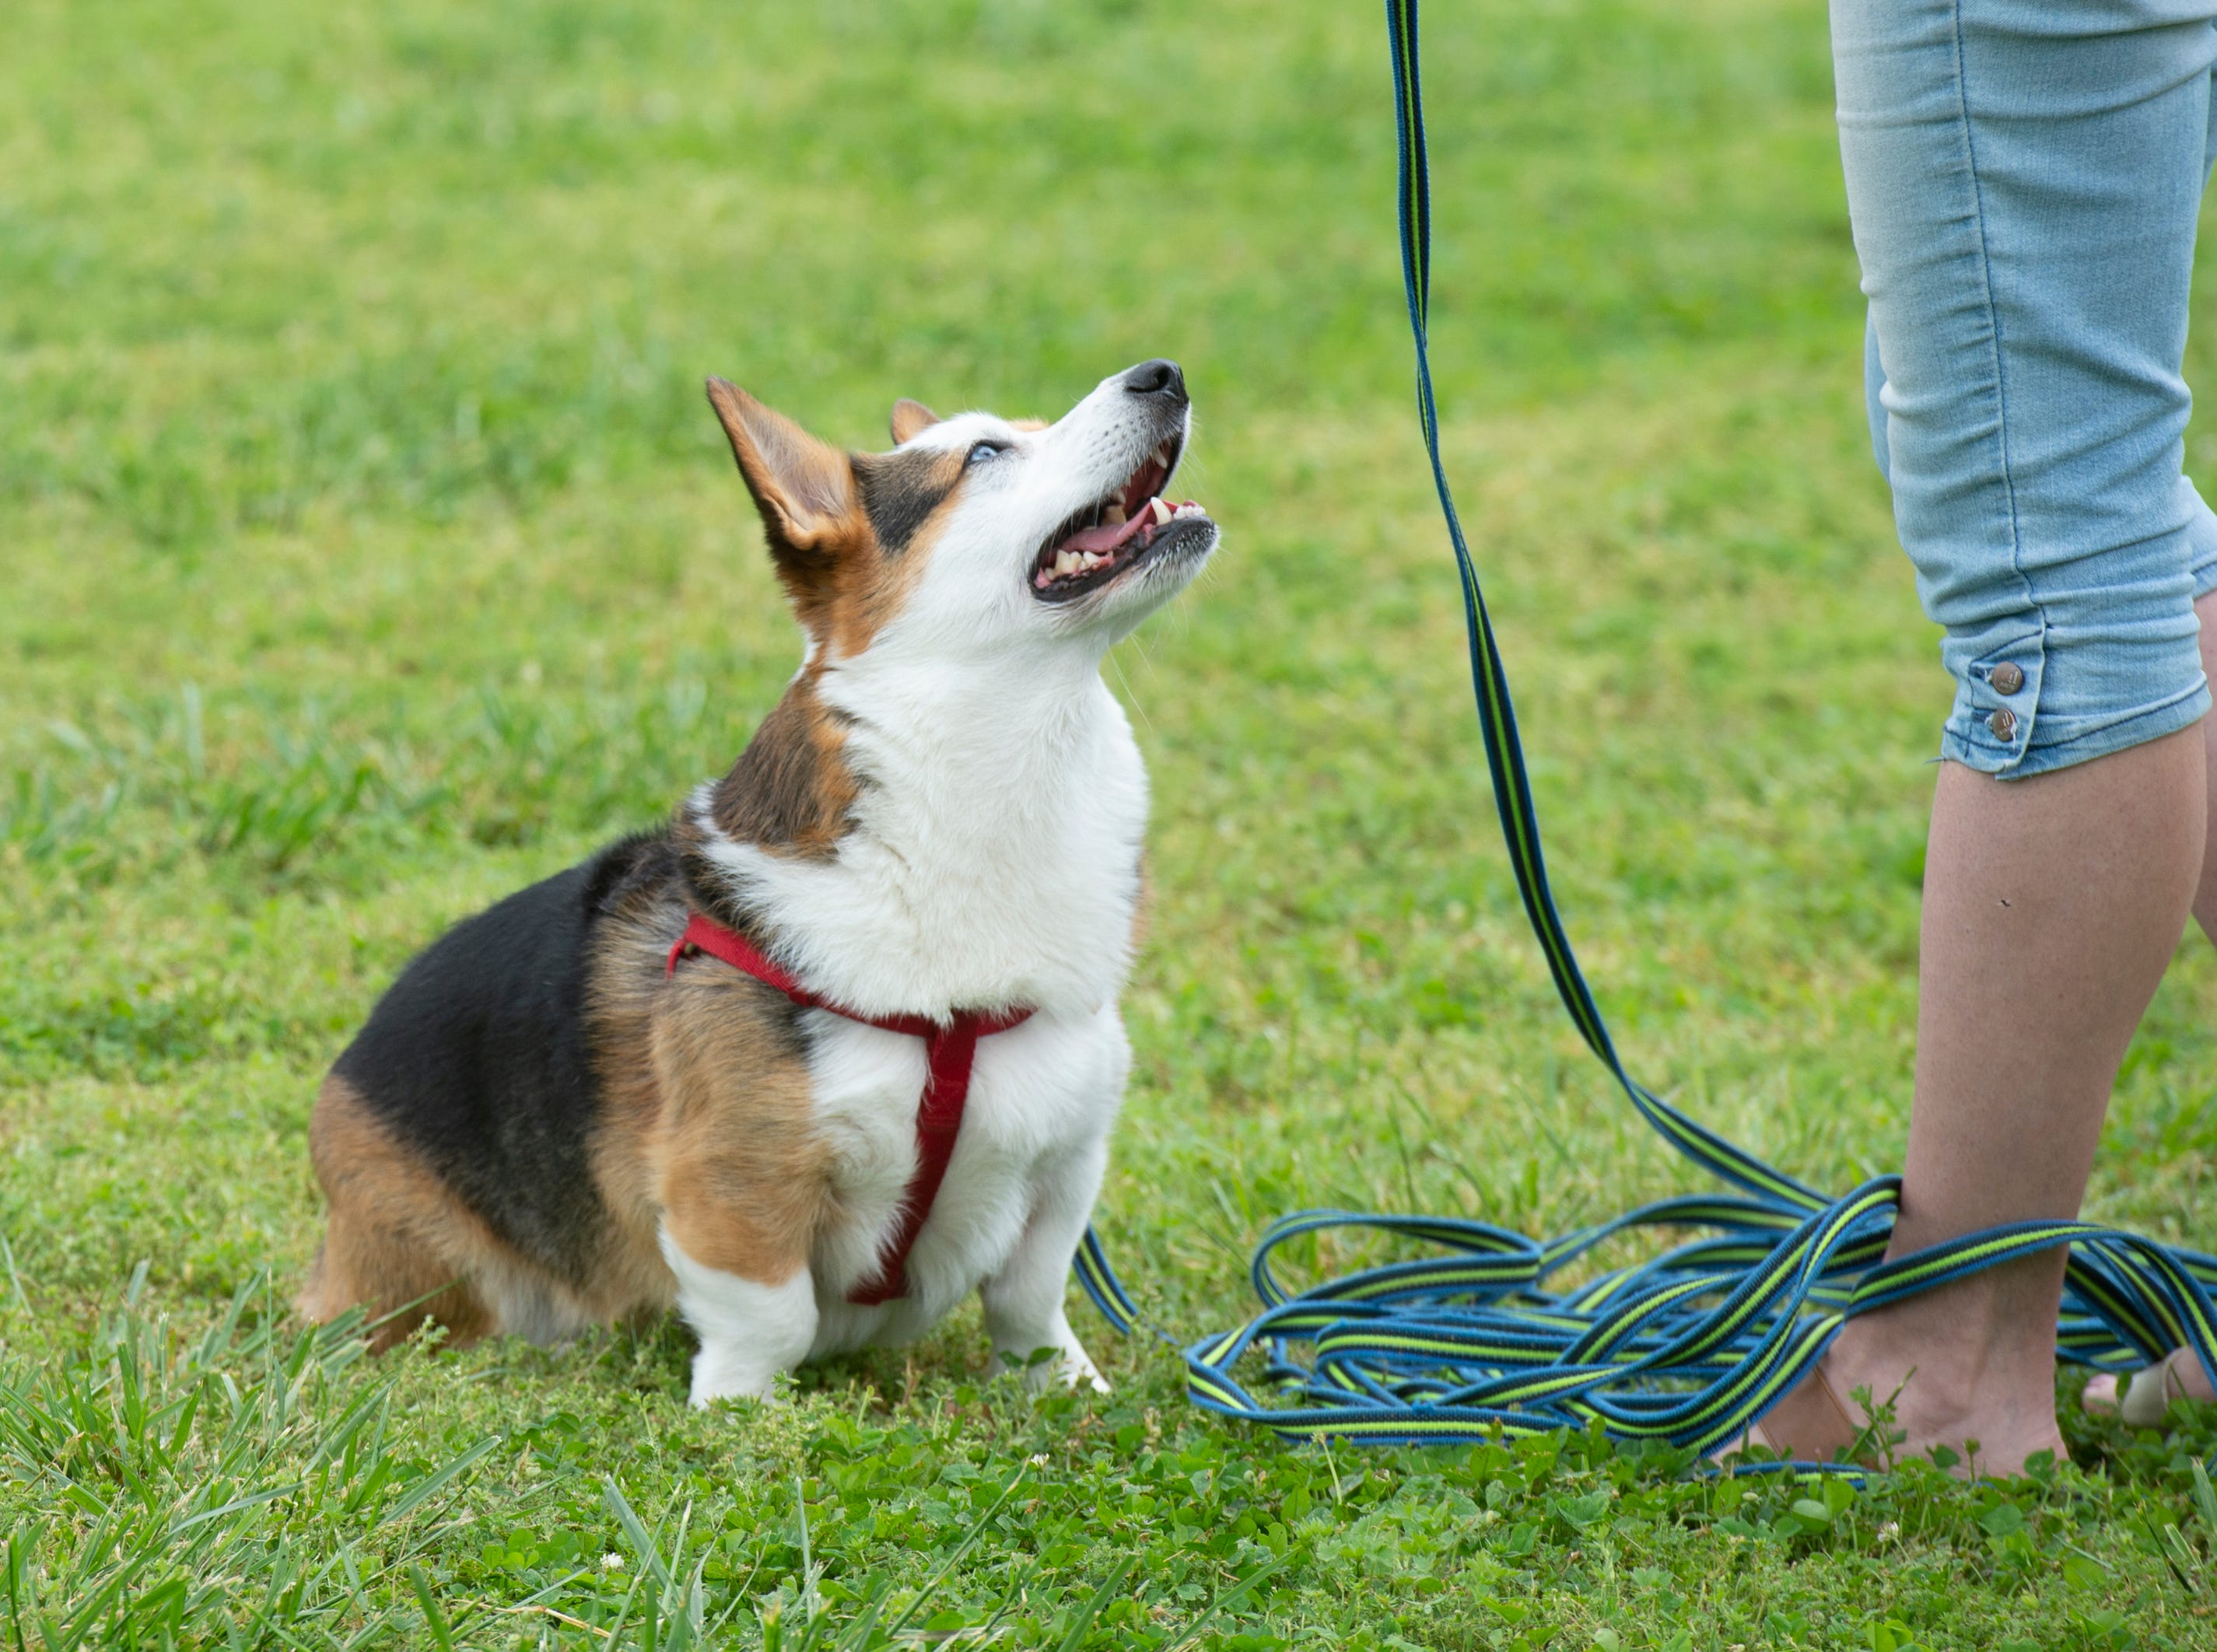 Dogs and owners attend Paws for a Cause at Simpsonville City Park Saturday, April 13, 2019.